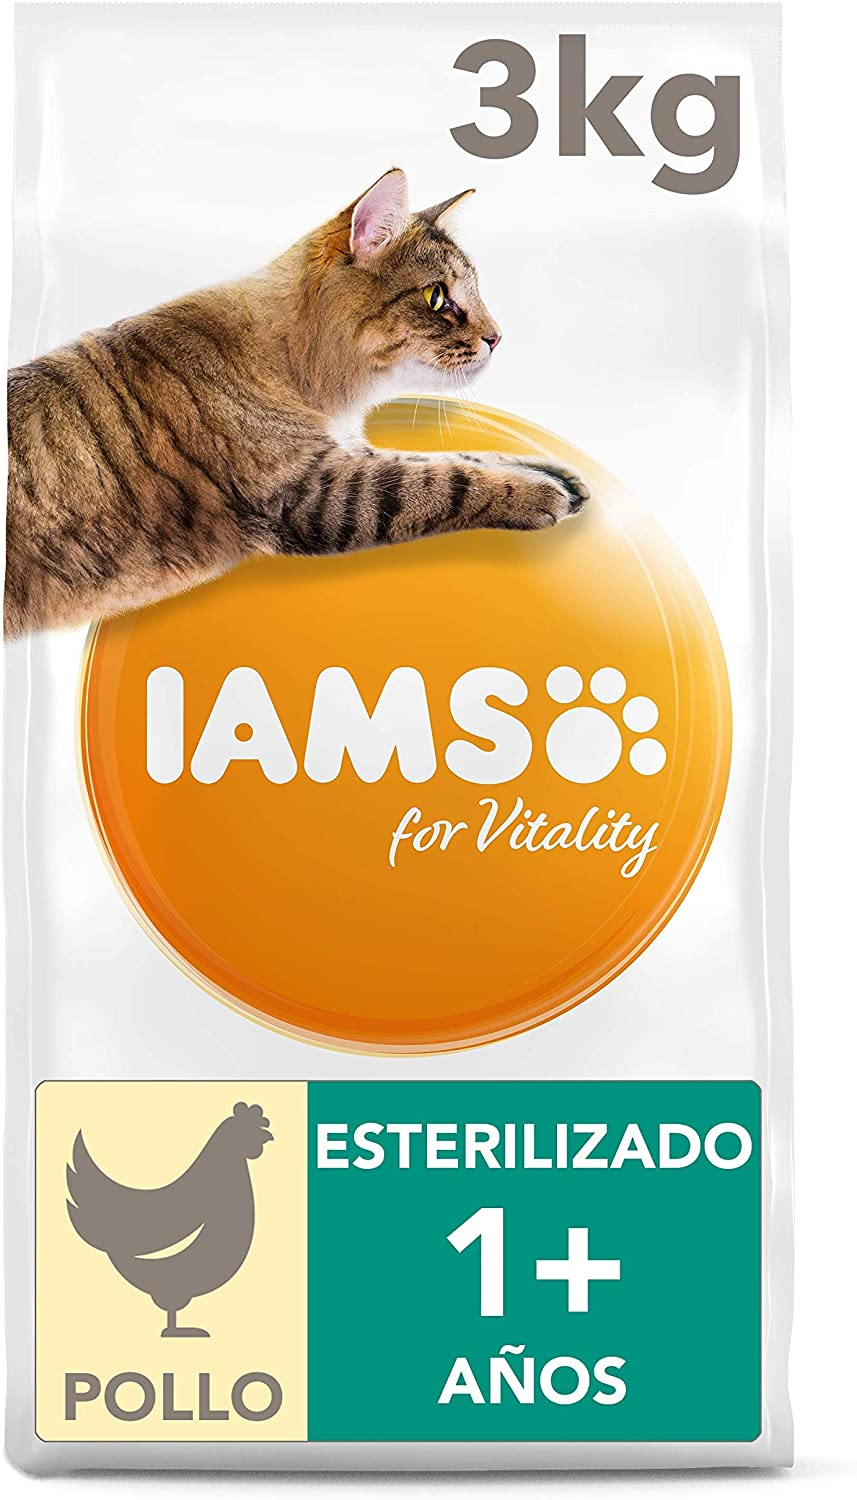 IAMS for Vitality Light in Fat/Esterilizado Alimento para gatos con pollo fresco, 3 kg